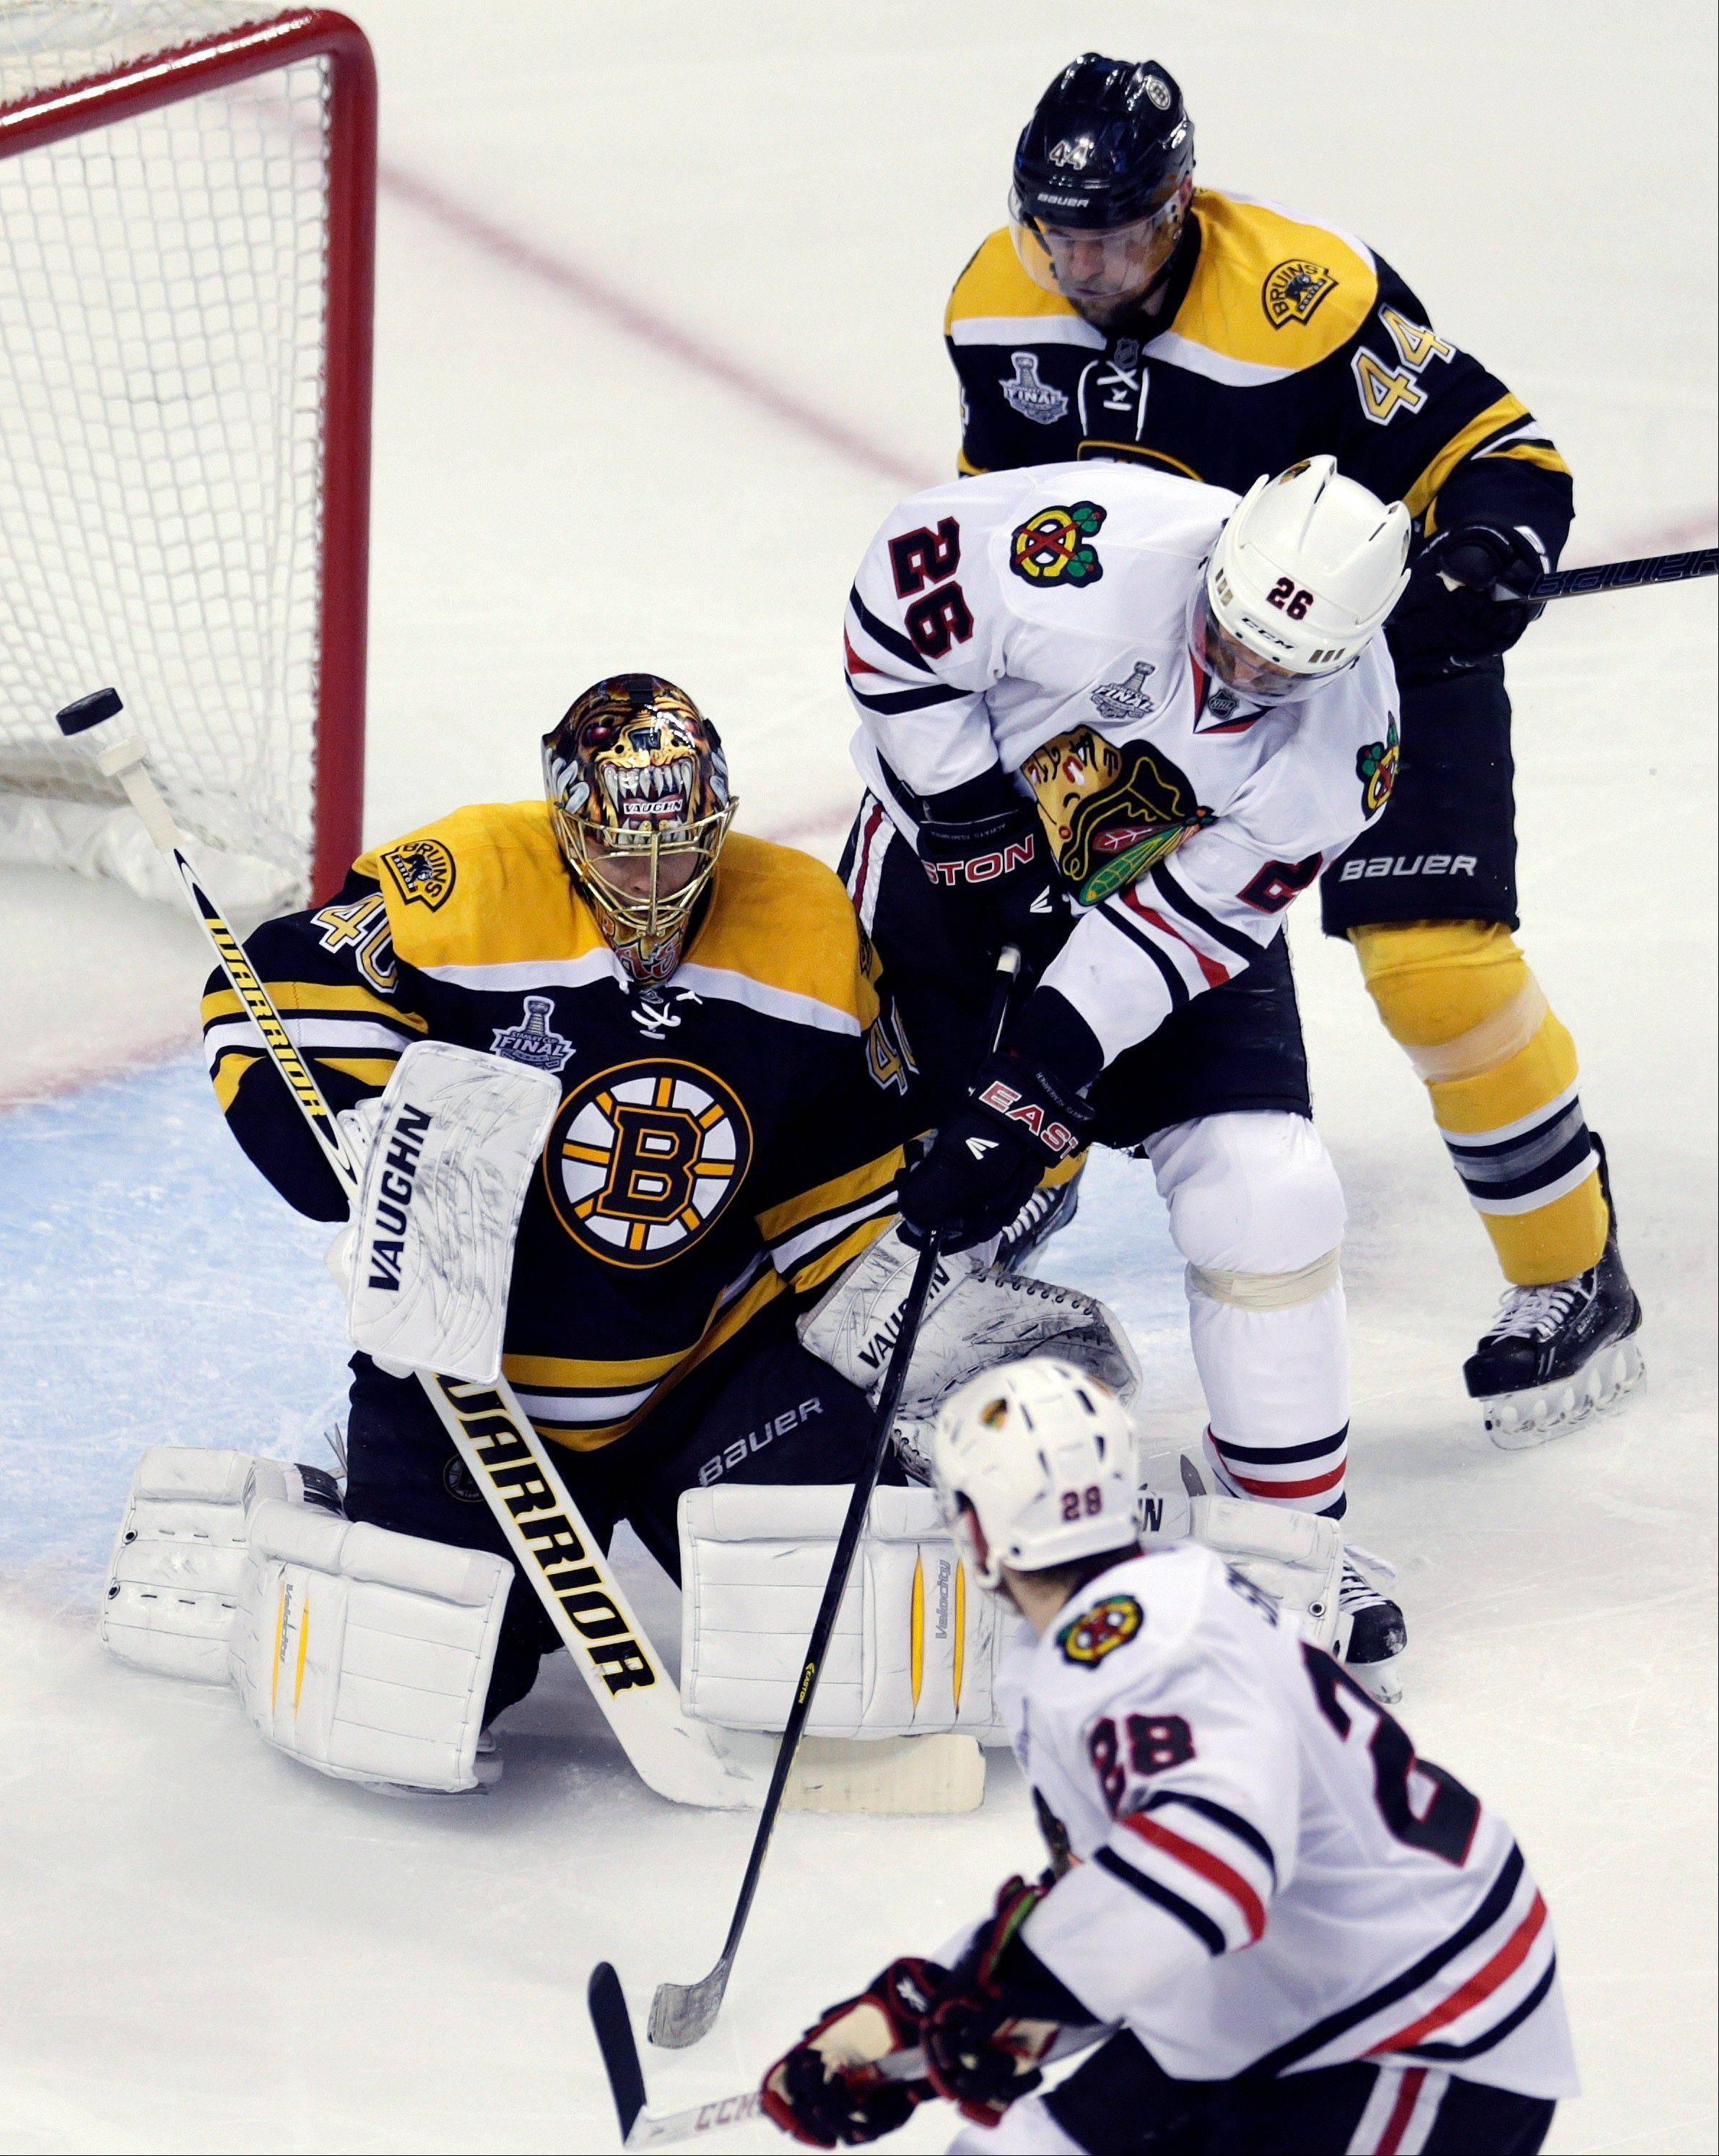 Boston Bruins goalie Tuukka Rask (40), of Finland, defends against Chicago Blackhawks center Michal Handzus (26), of Slovakia, as Bruins defenseman Dennis Seidenberg (44), of Germany, and Blackhawks right wing Ben Smith (28) surround them during the third period in Game 3 of the NHL hockey Stanley Cup Finals.